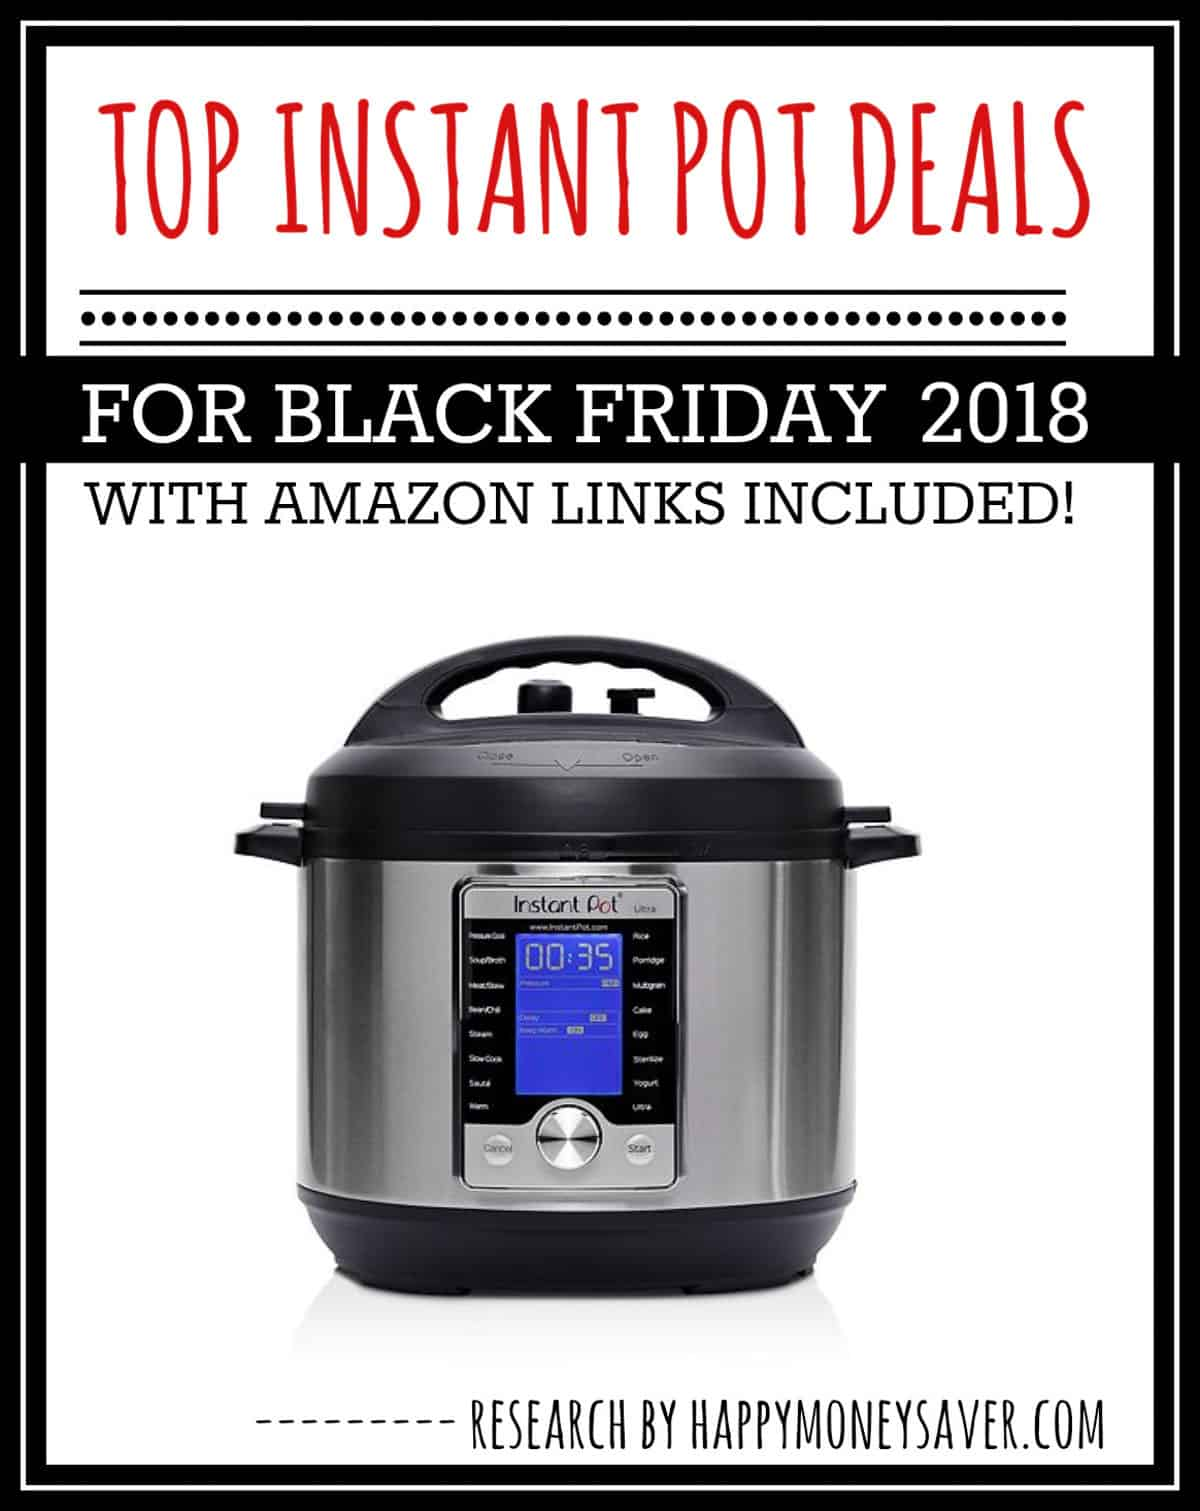 HUGE roundup of all the Black Friday Instant Pot Deals 2018! Research is all done for you! You're gonna love this if you love saving money!